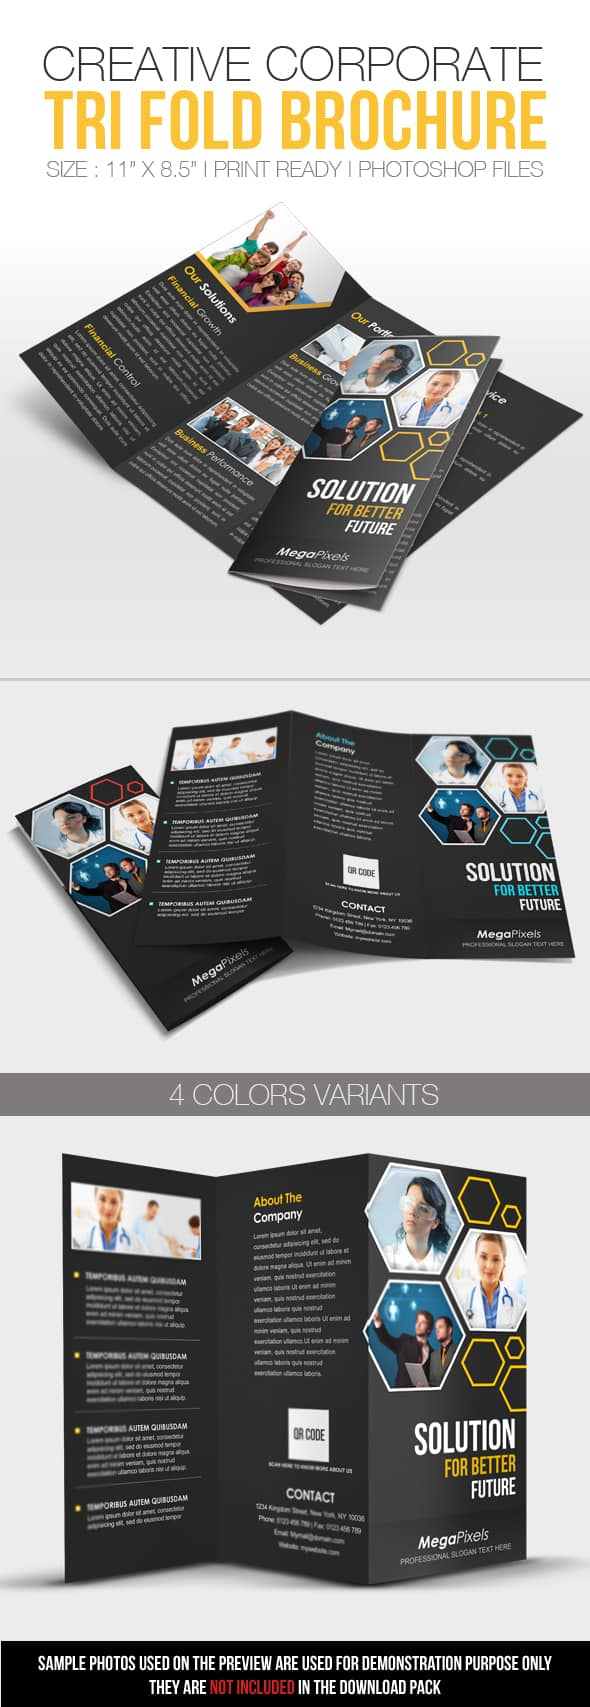 Creative-Corporate-tri-fold-brochure_Mockup